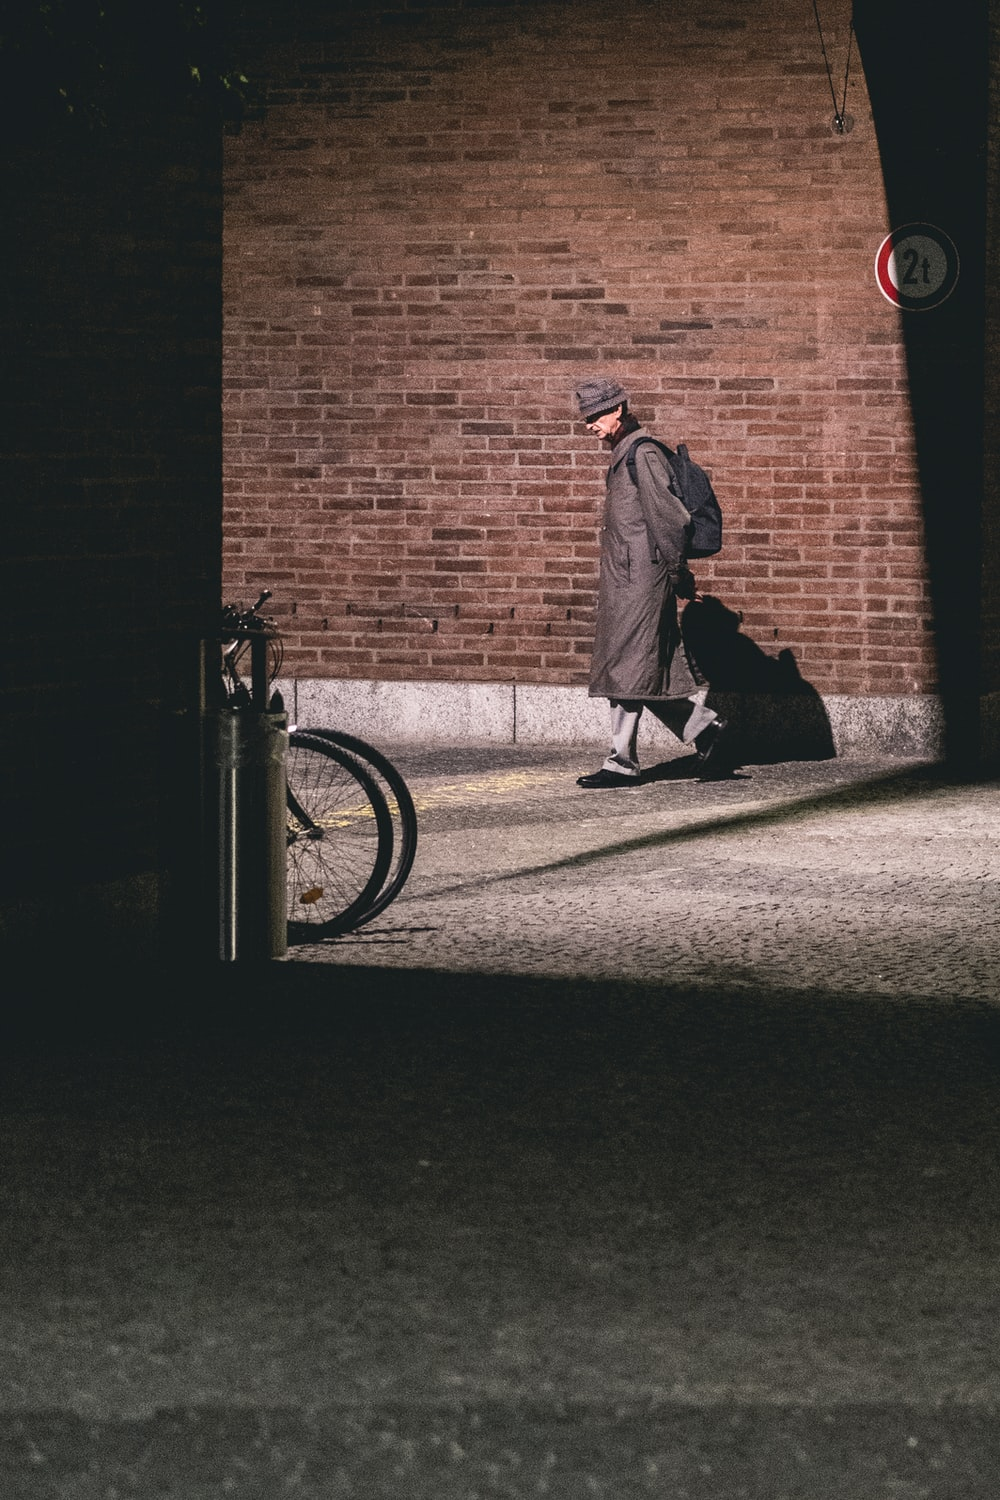 man walking in alley